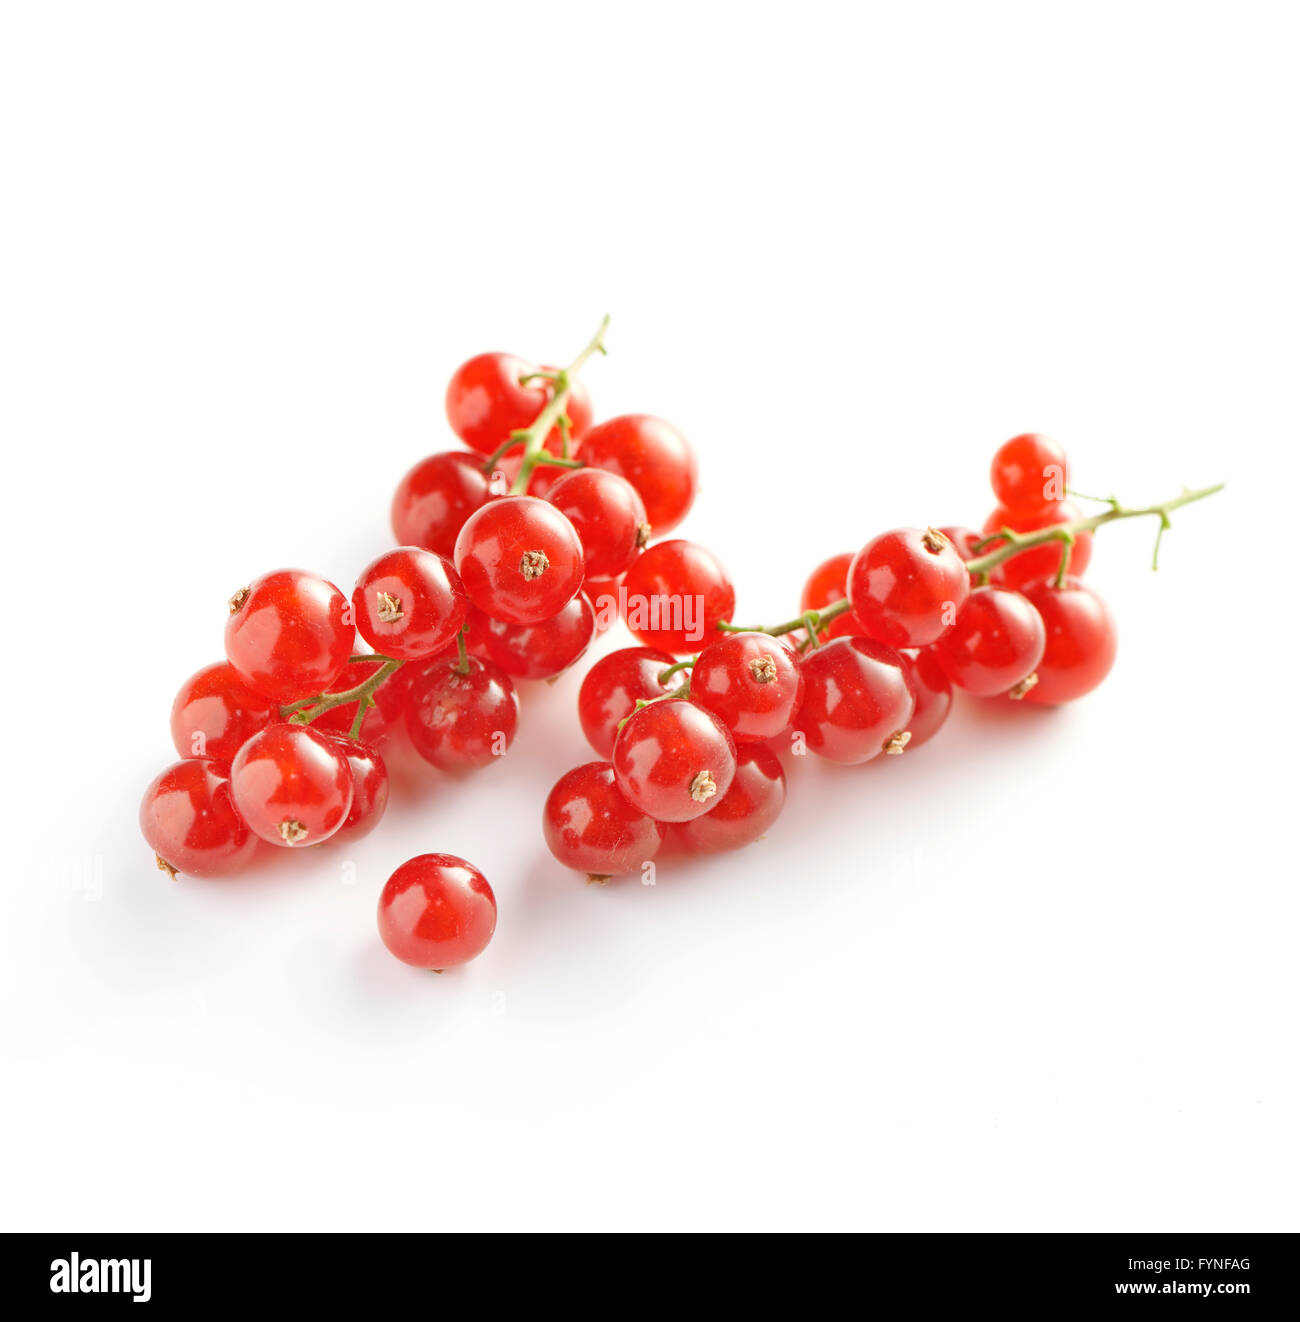 Close Up Still Life of Two Sprigs of Red Ripe Currants on White Background with Copy Space in Square Image Format - Stock Image